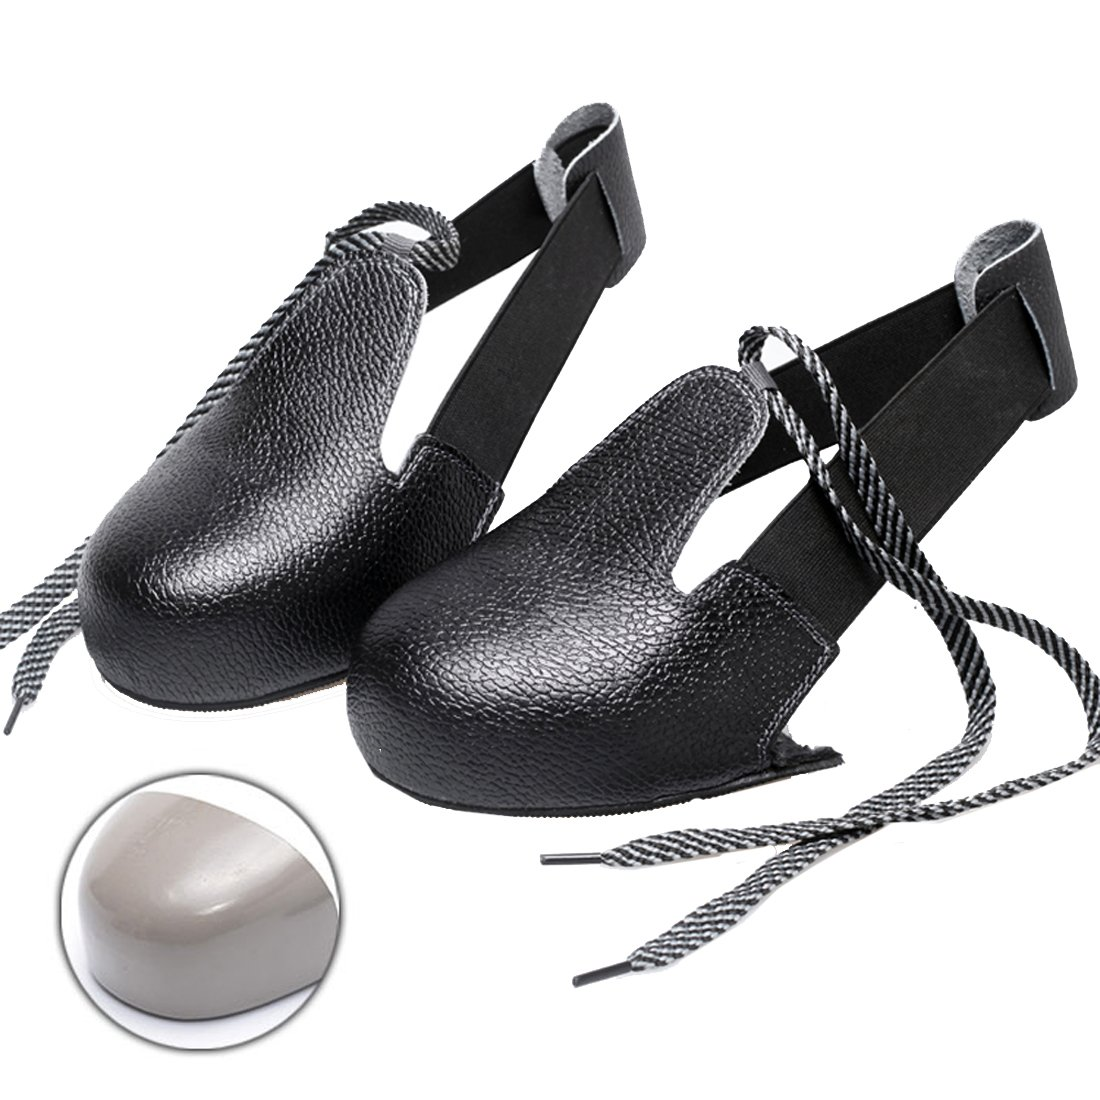 Steel Toe Work Shoes Cover - Protective